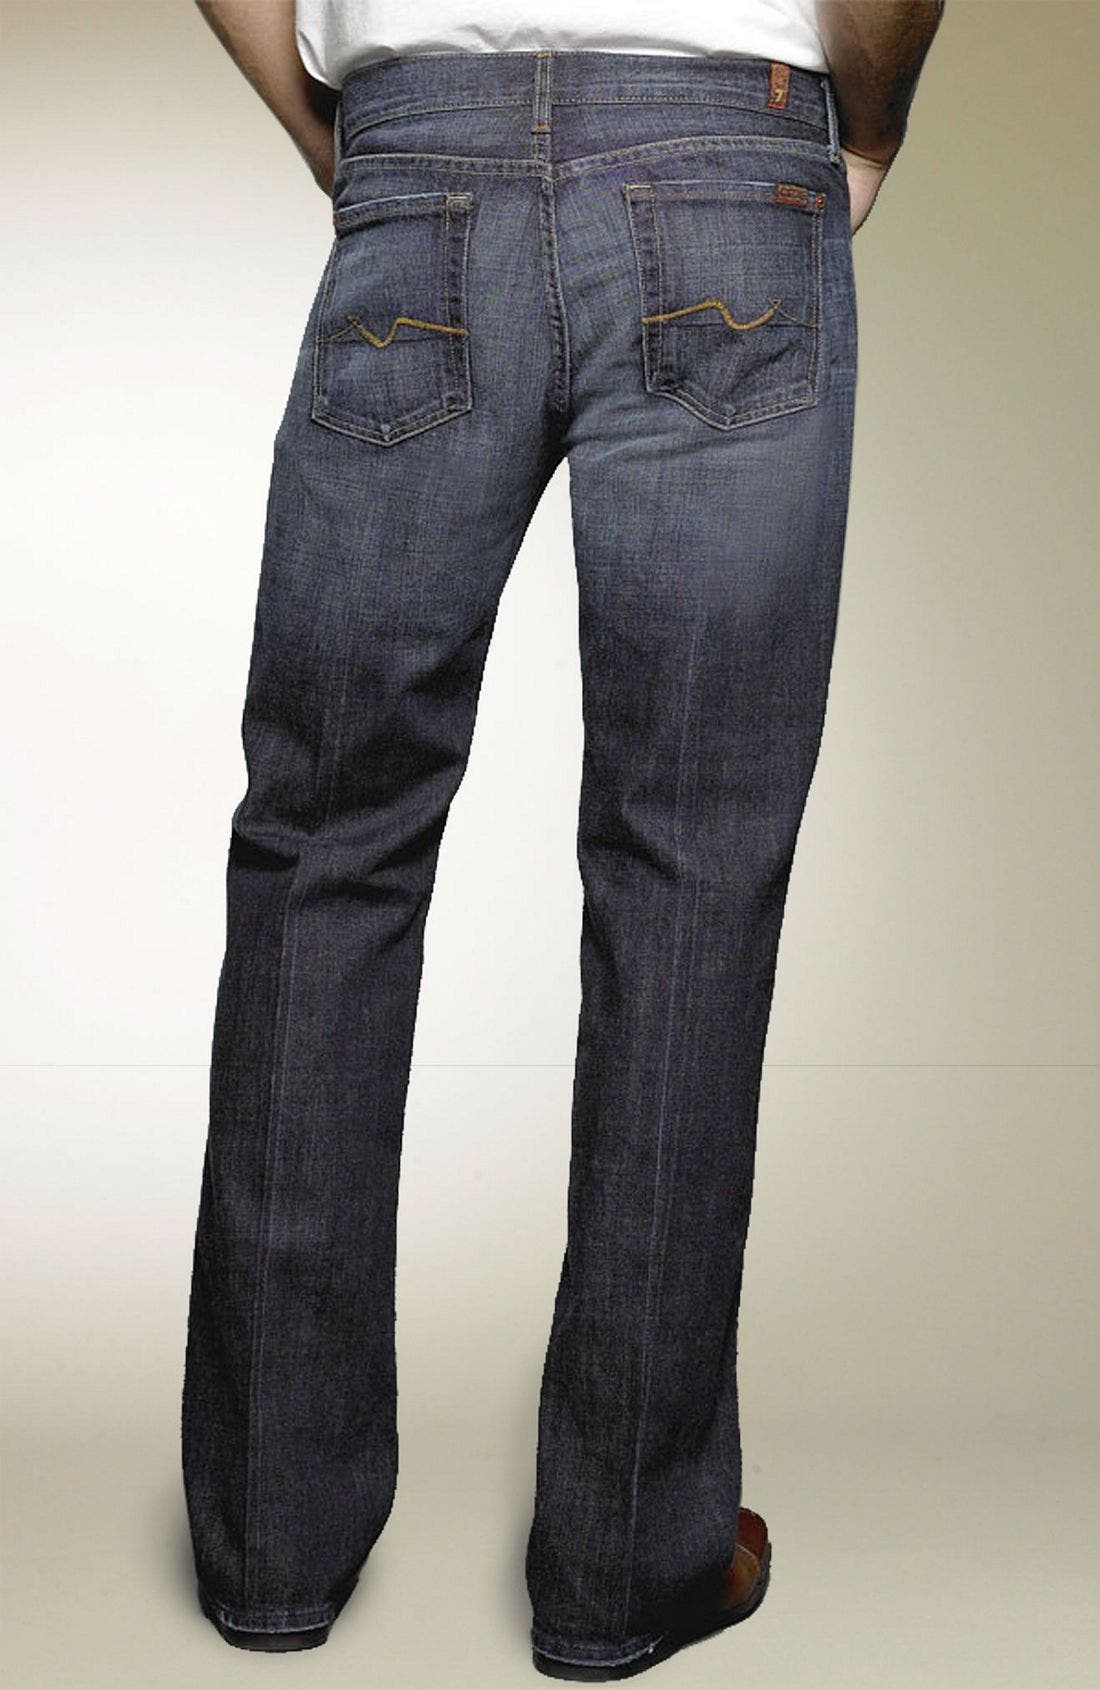 Alternate Image 1 Selected - 7 For All Mankind® Bootcut Jeans (Dark New York)